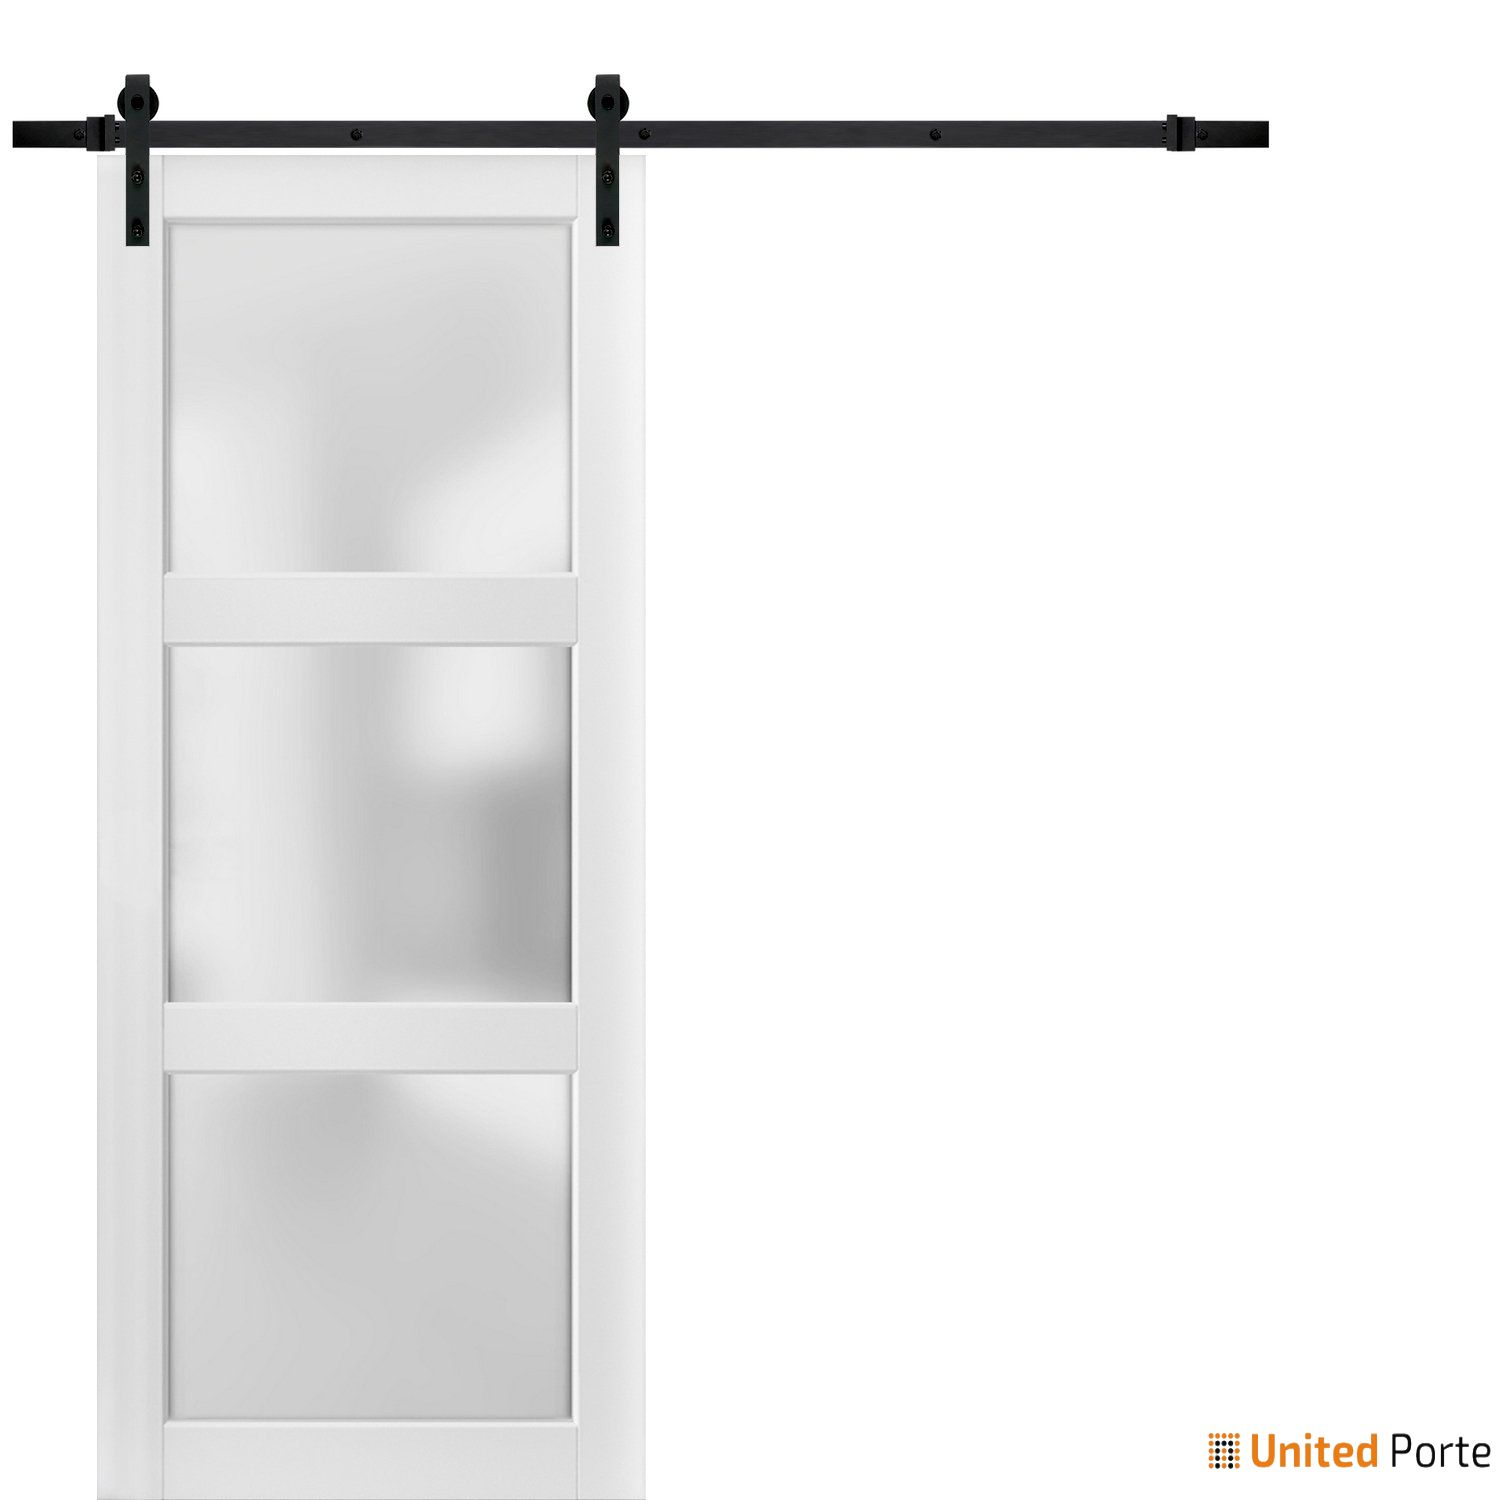 Lucia 2552 White Sturdy Barn Door Frosted Glass with Black Hardware | Solid Panel Interior Barn Doors